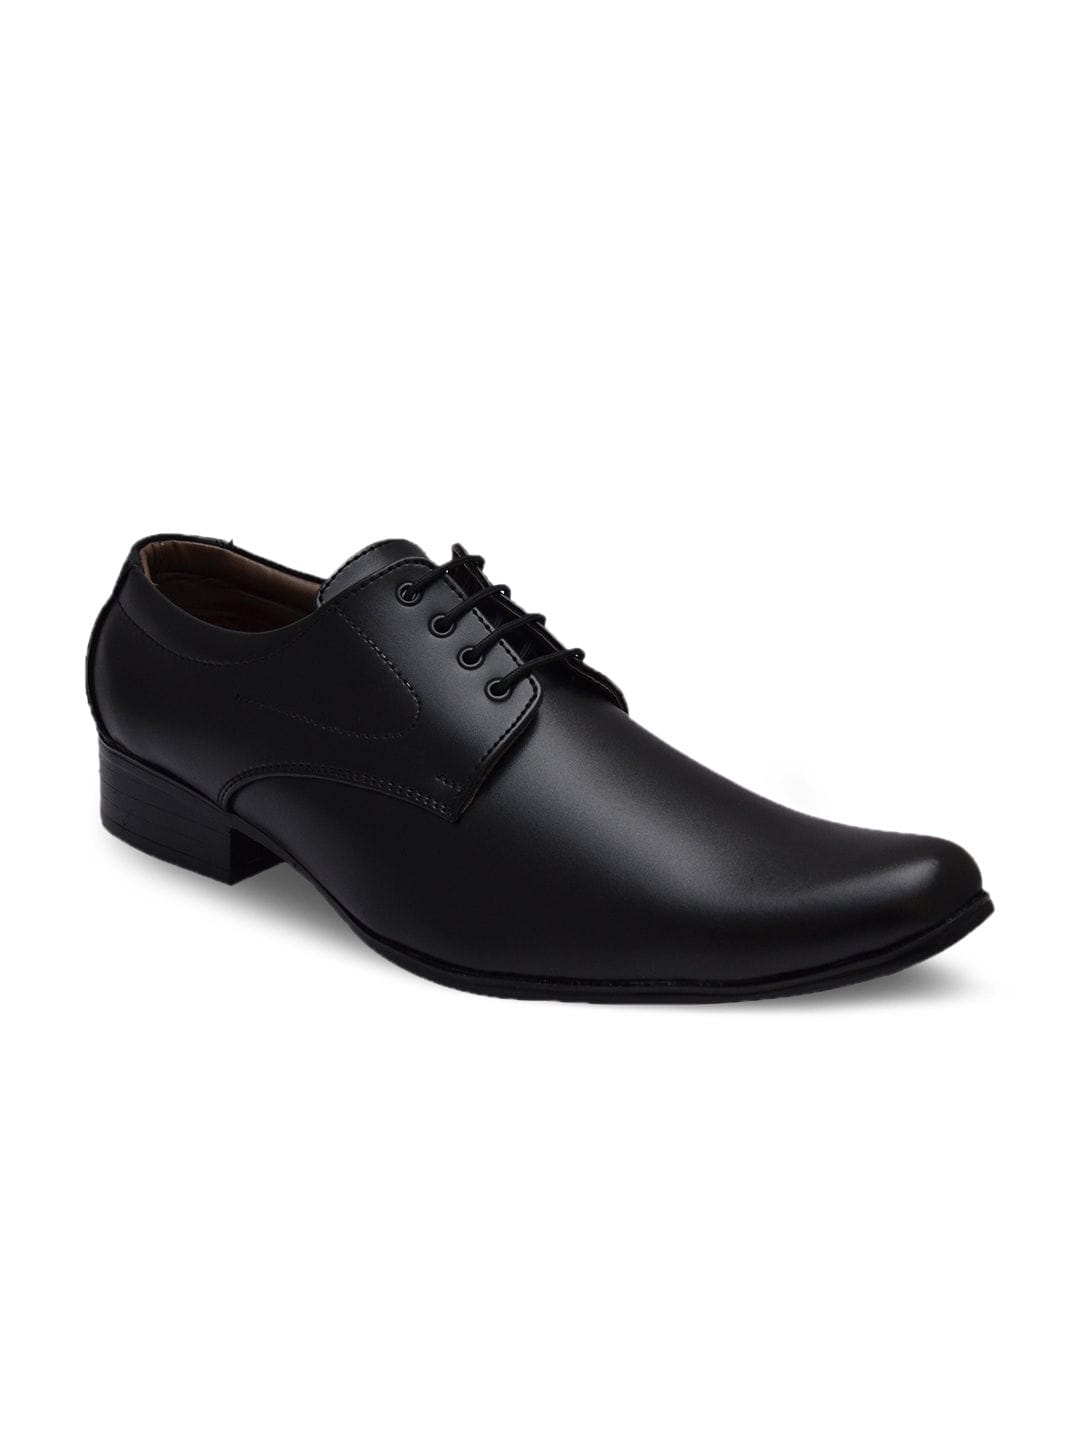 93e1bc7a9fd Semiformal Shoes - Buy Semiformal Shoes online in India